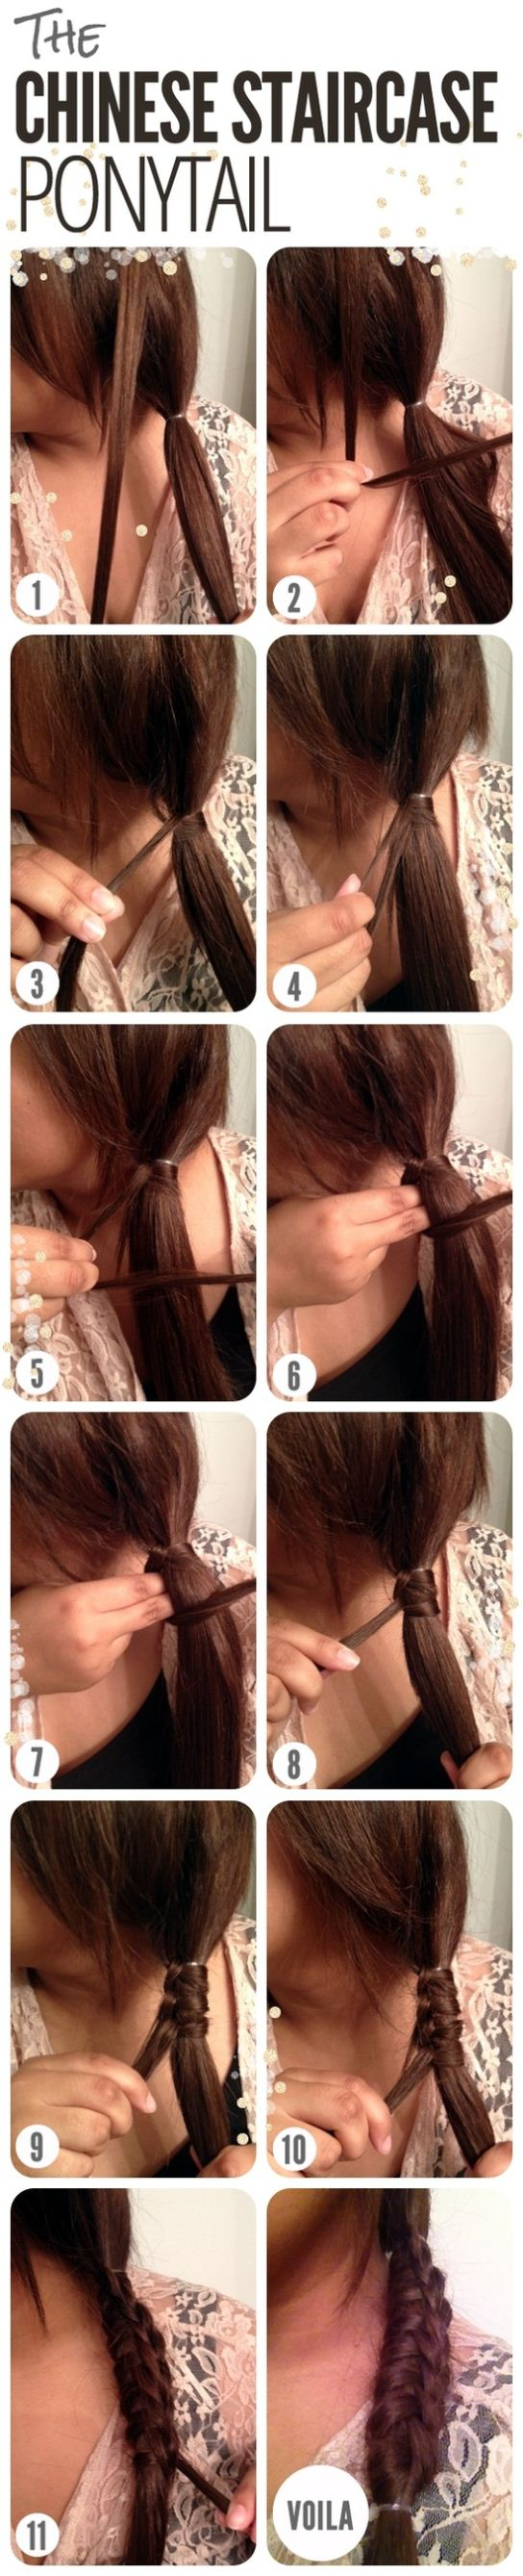 DIY Chinese staircase ponytail hairstyle over